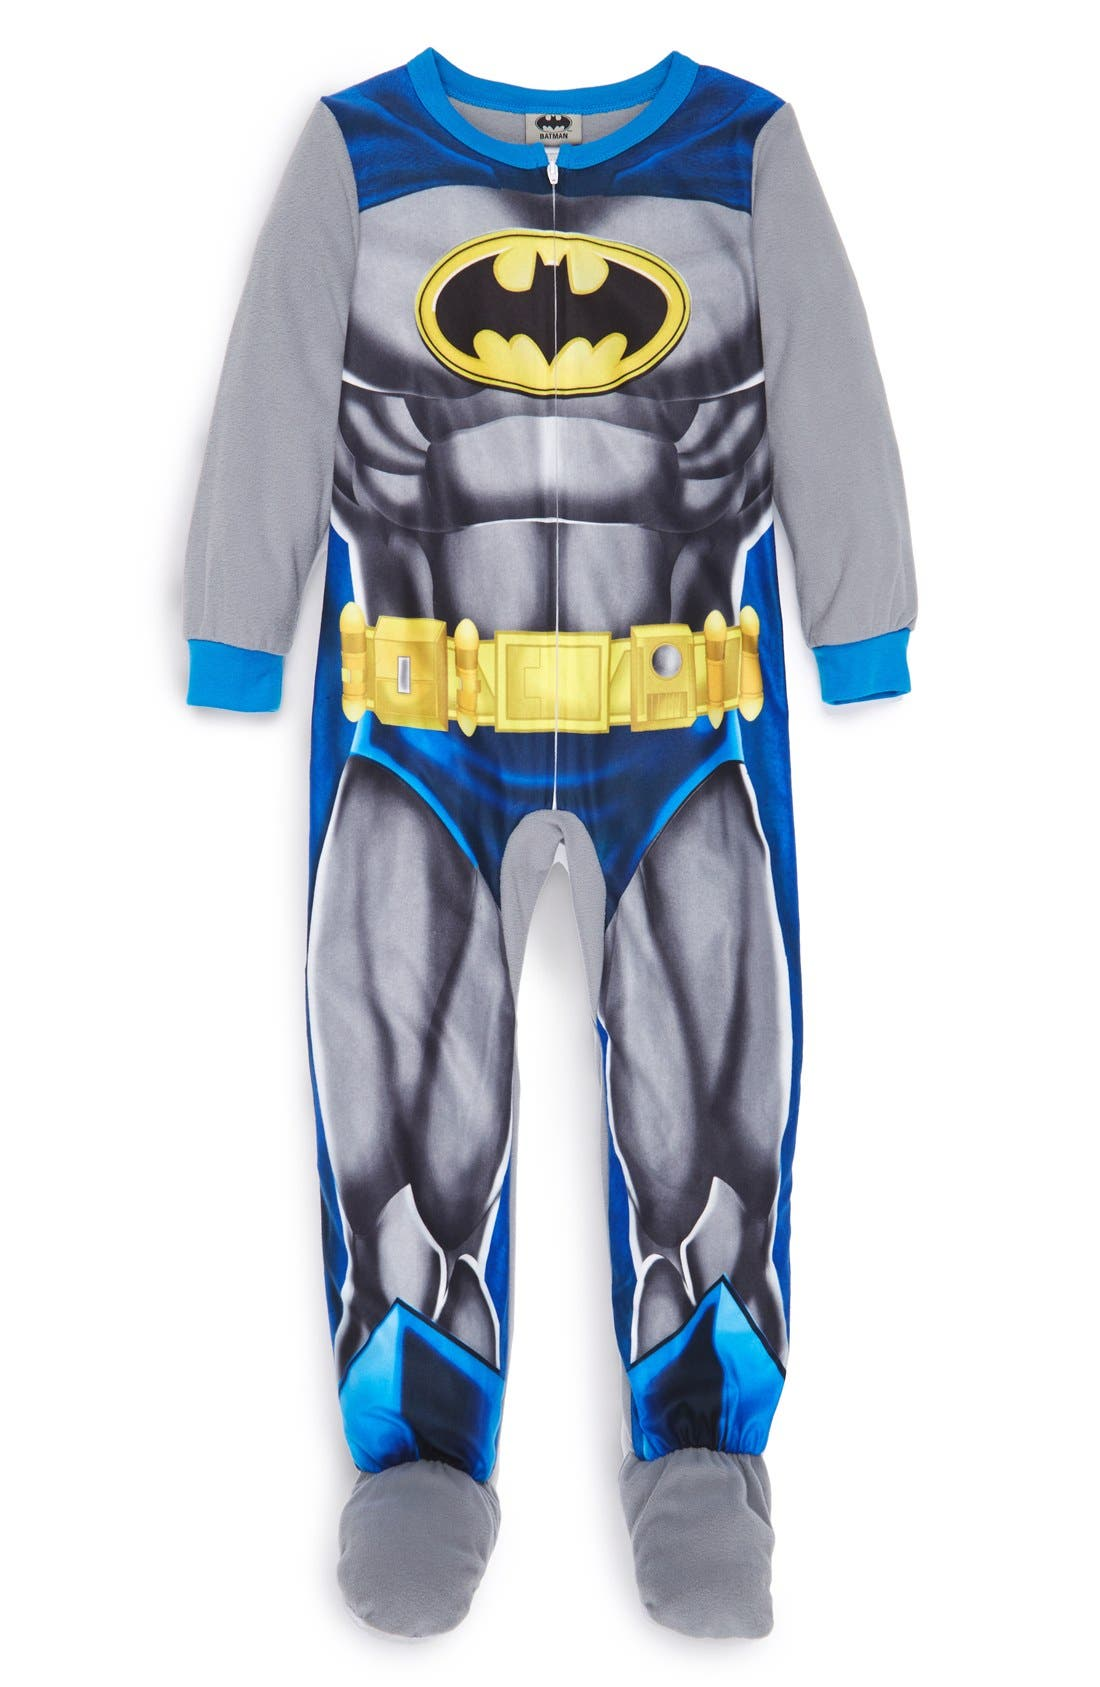 'Batman' Footed Sleeper Pajamas,                             Main thumbnail 1, color,                             960